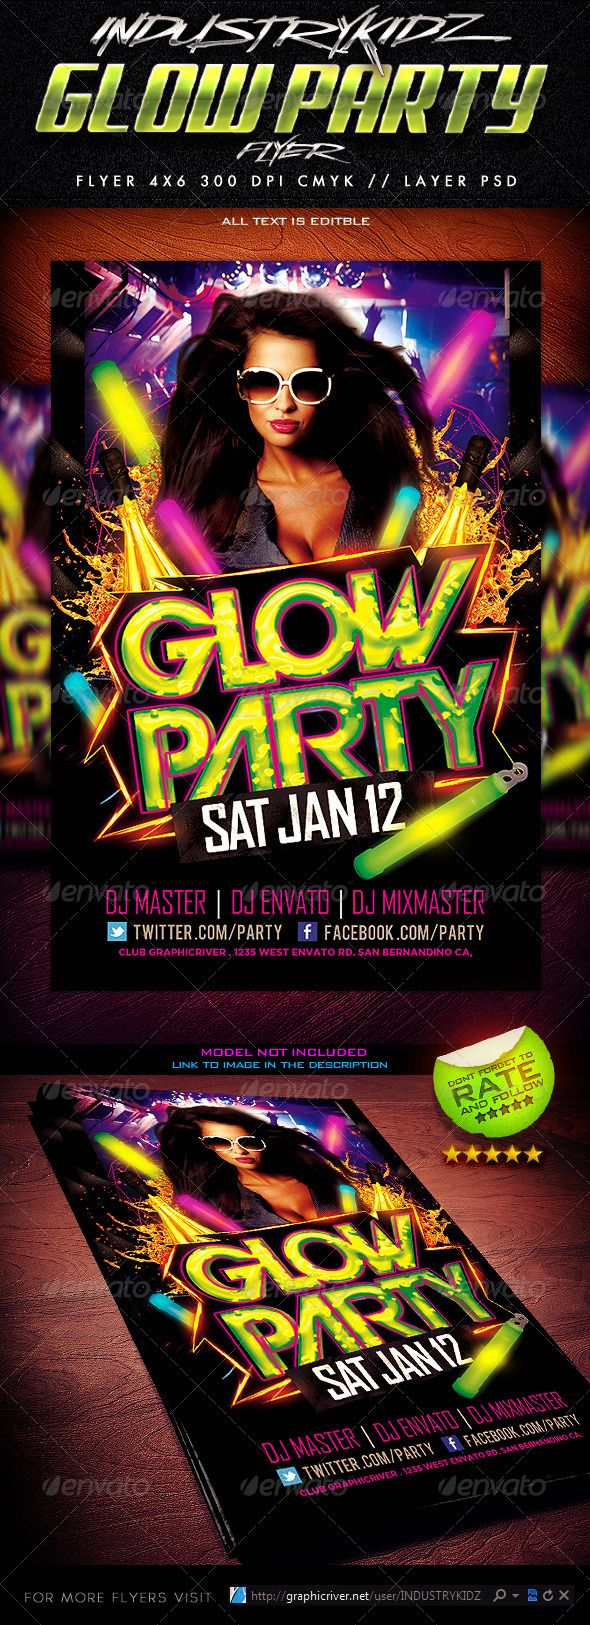 Glow Party Flyer Template - Clubs & Parties Events Download here: https://graphicriver.net/item/glow-party-flyer-template/3721409?ref=classicdesignp